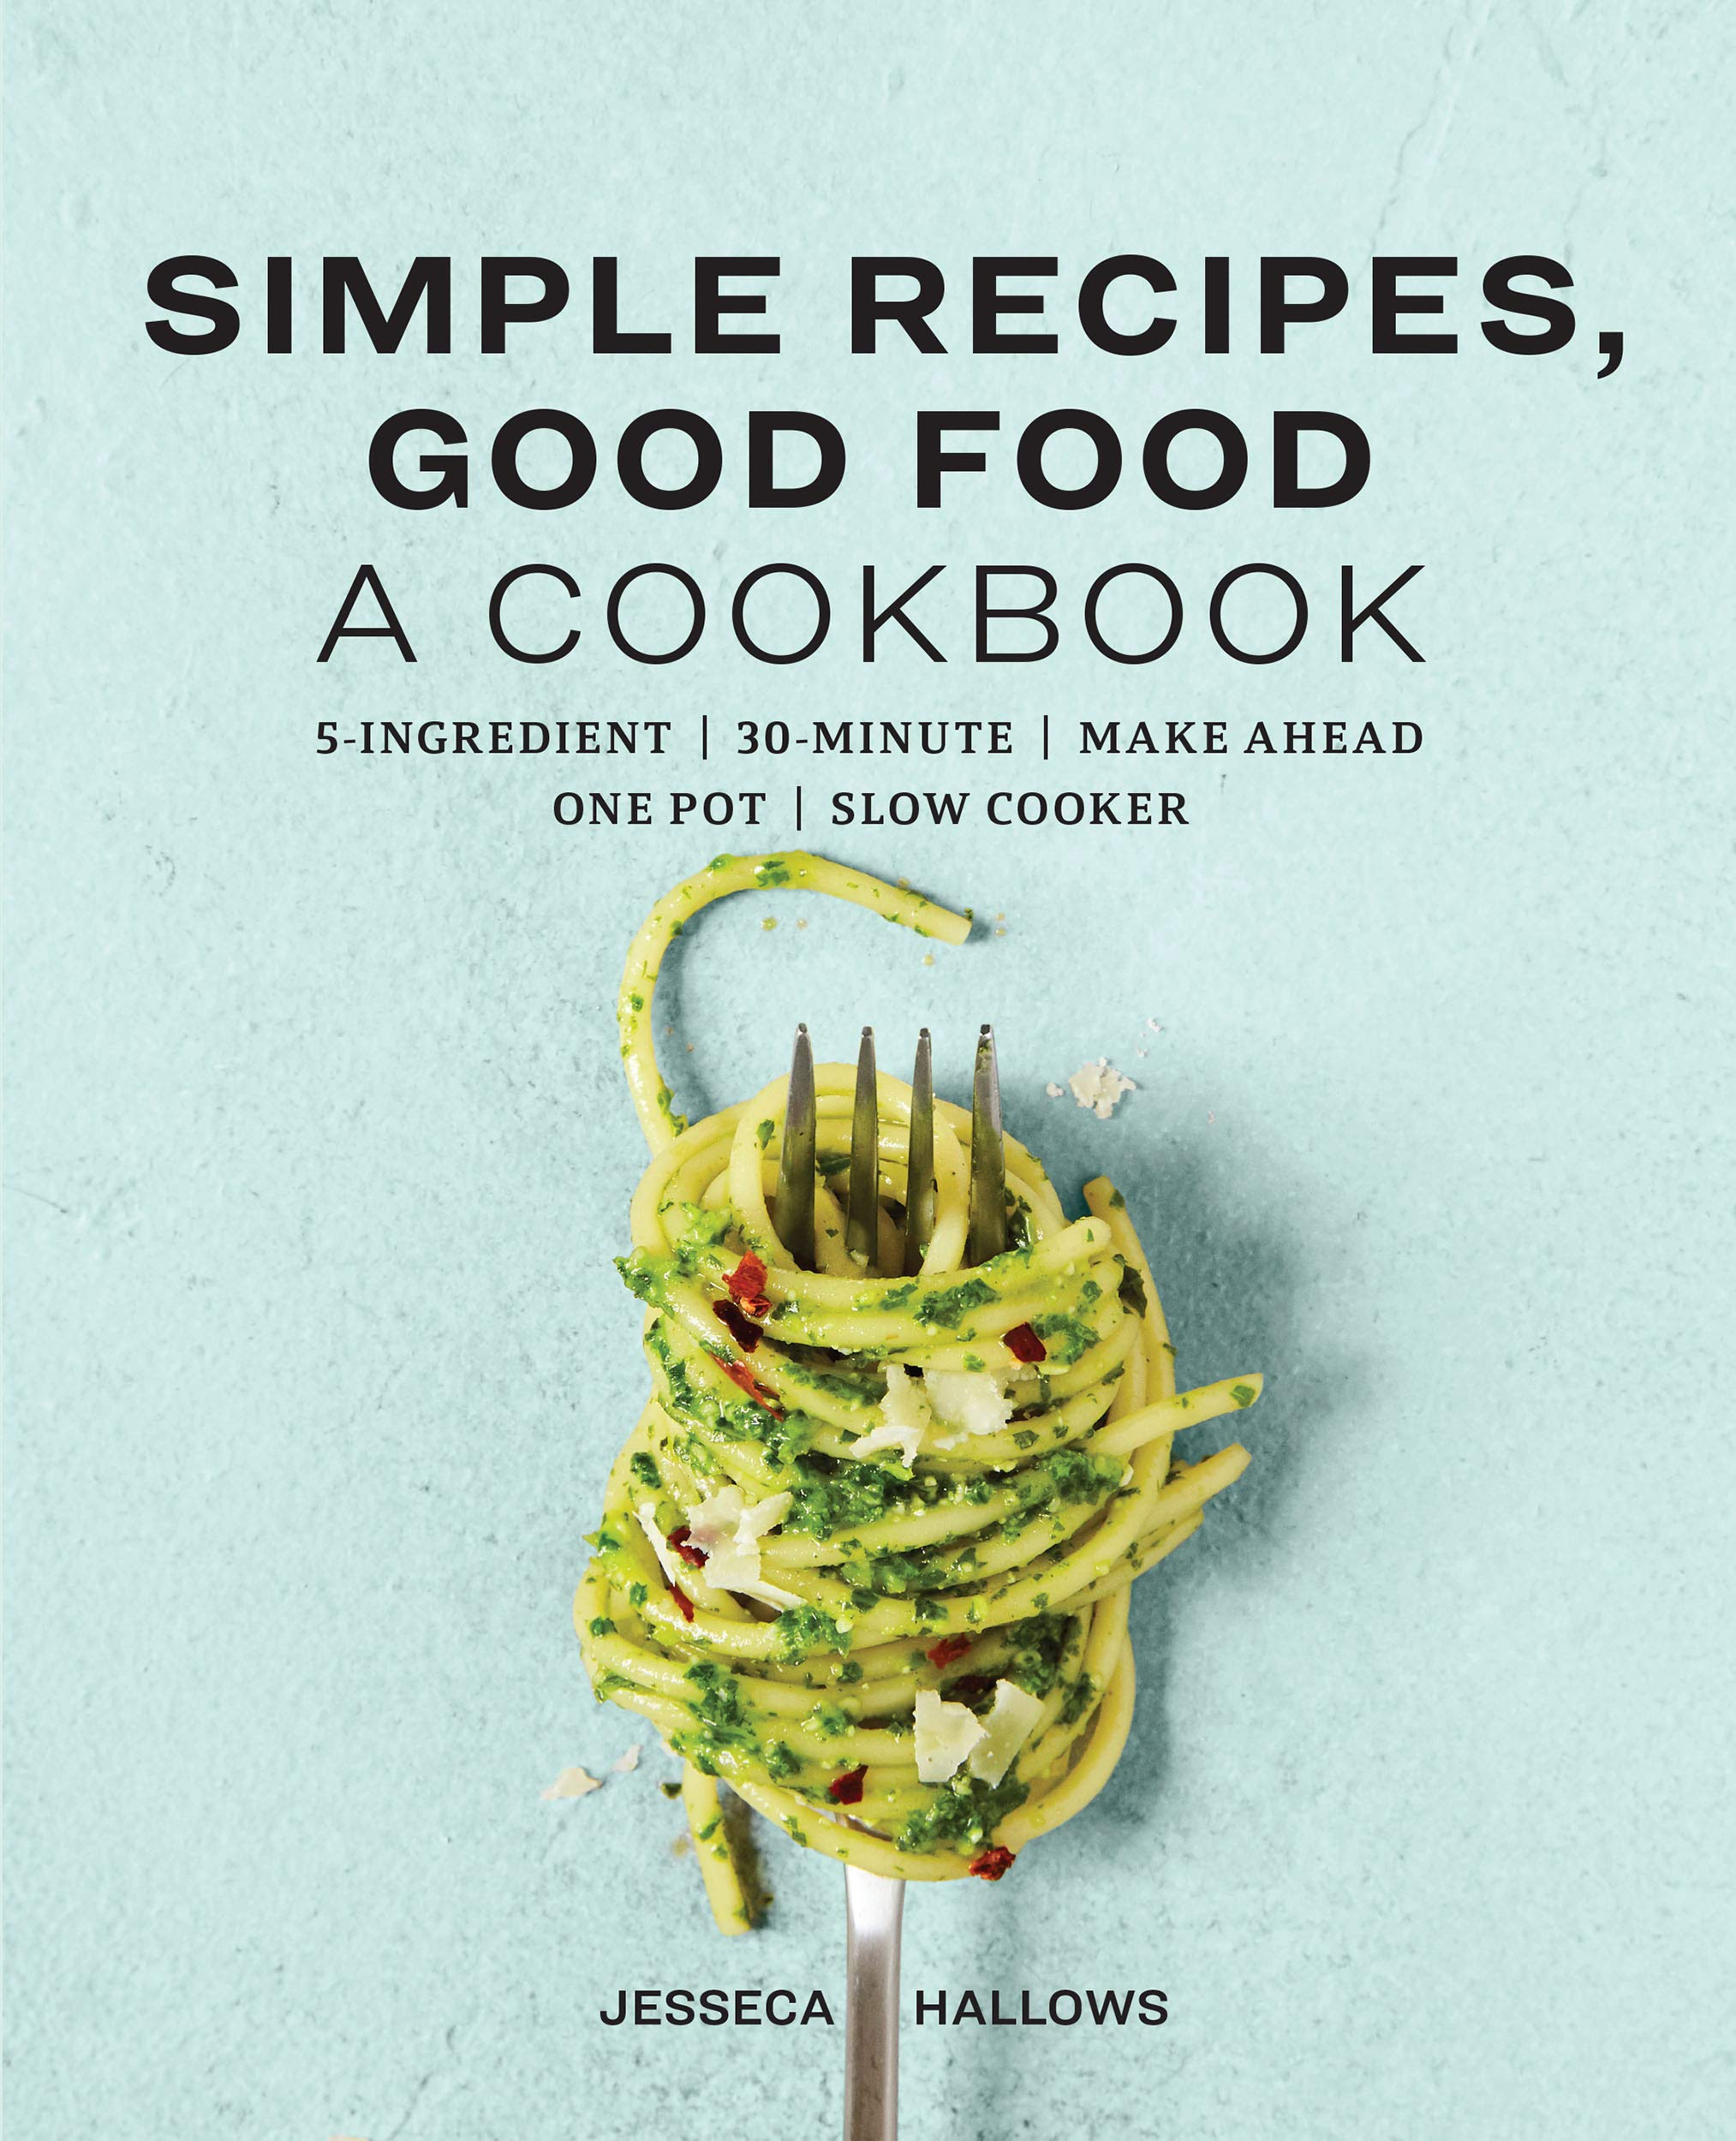 Simple Recipes, Good Food: A Cookbook